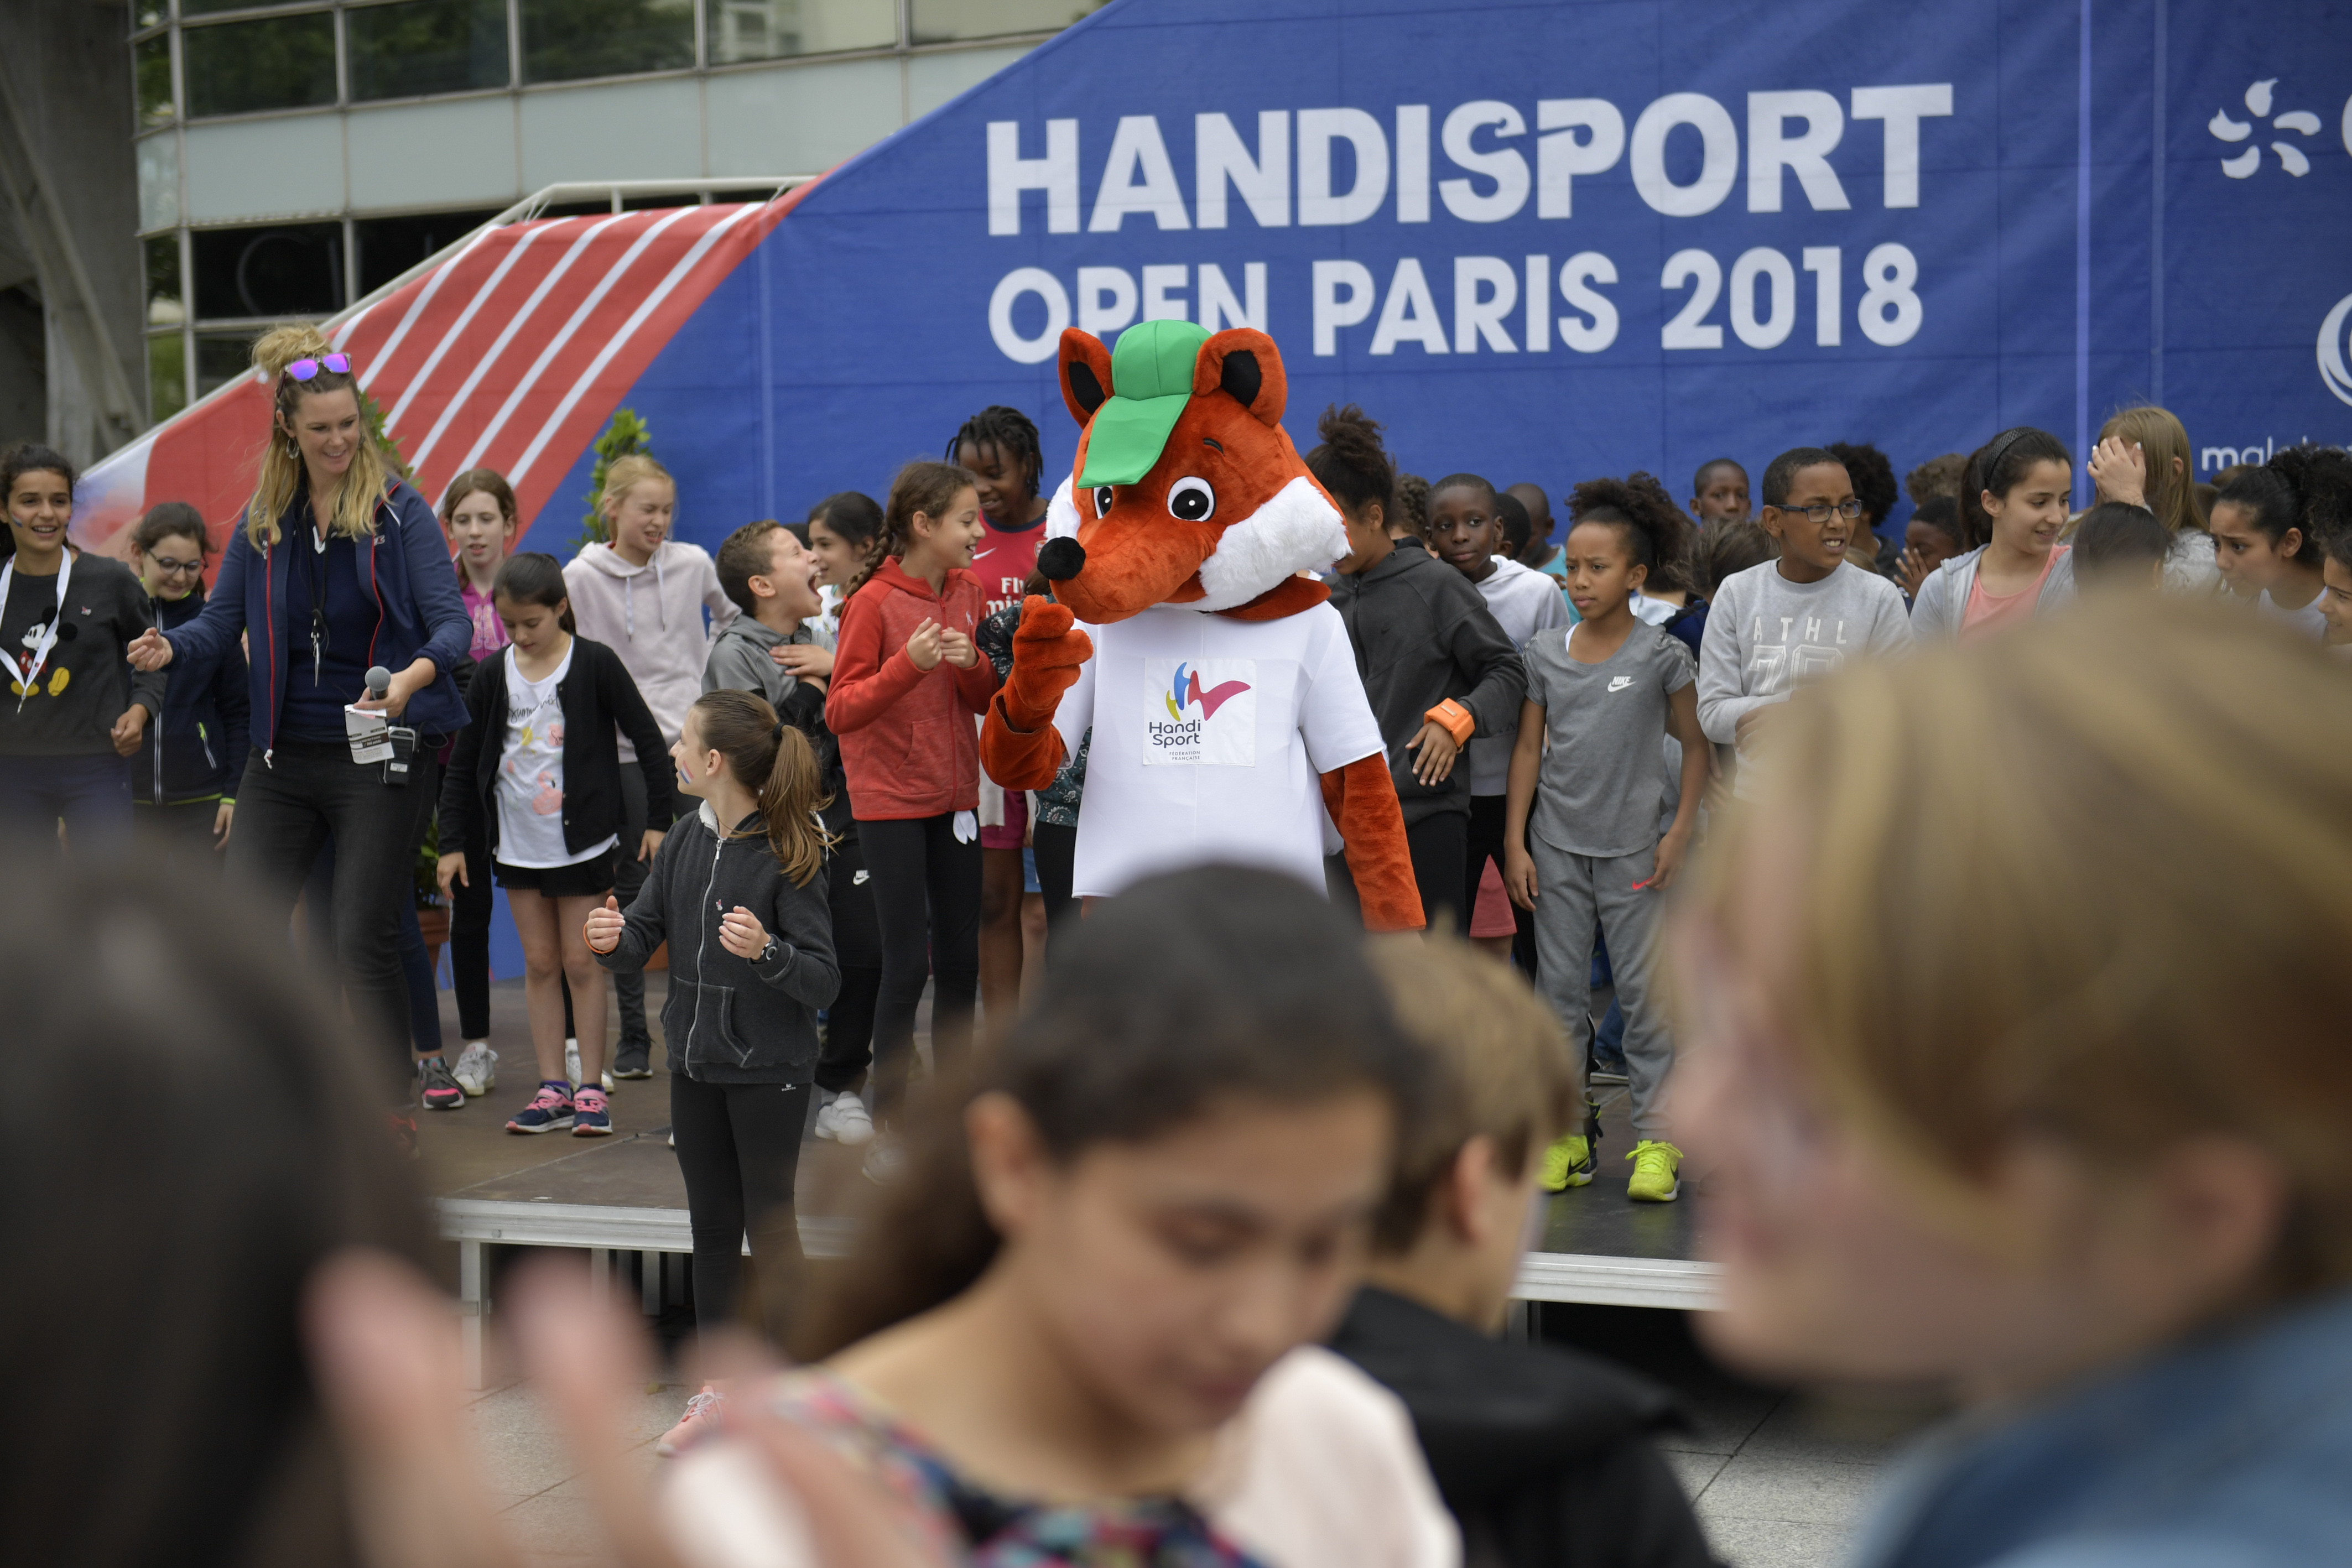 Handisport Open Paris 2019